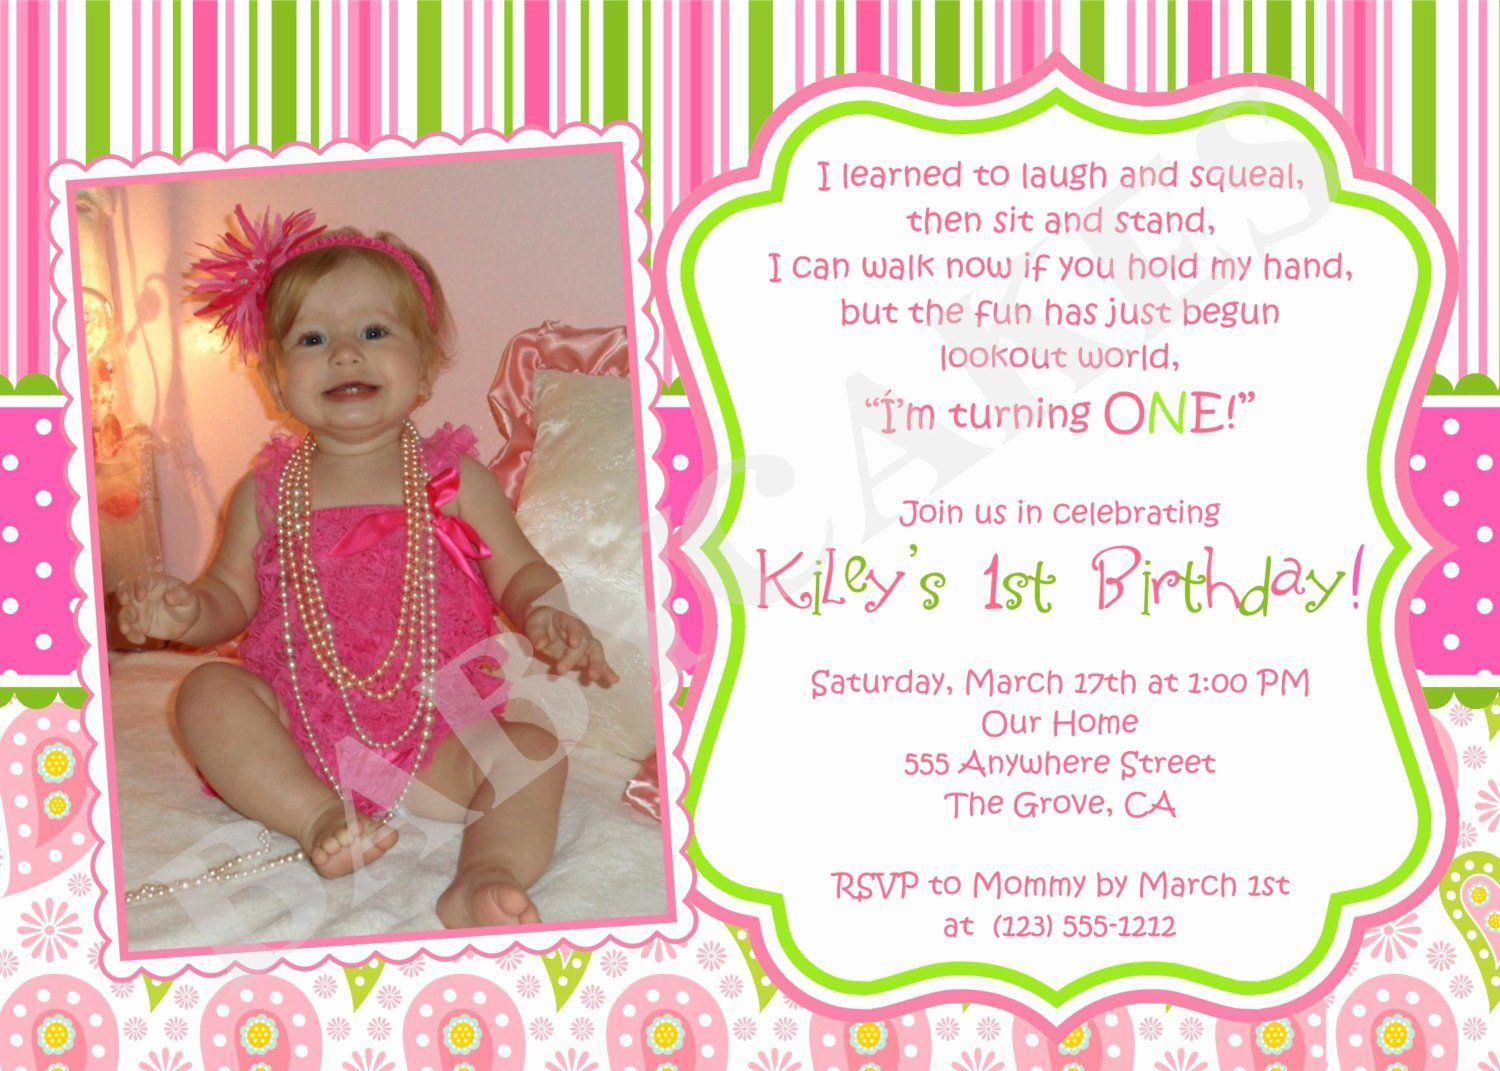 5st Birthday Invitation Message Luxury First Birthday Invitation